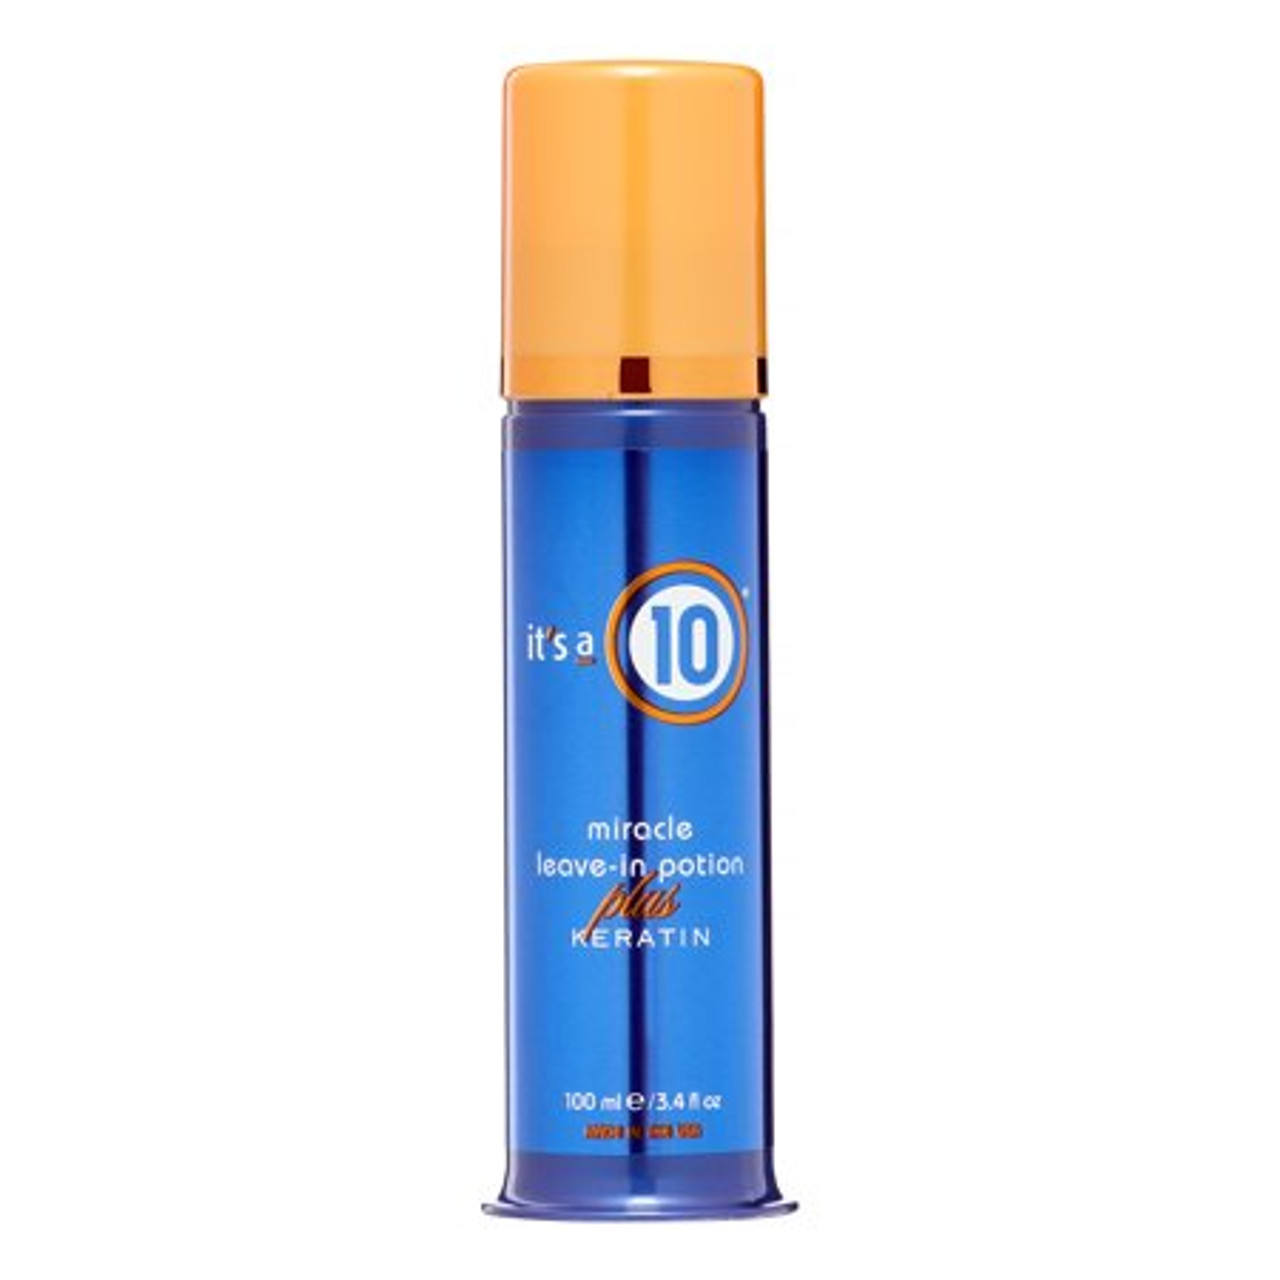 It's A 10 Miracle Leave In Potion Plus Keratin, 3.4 Fluid Ounce